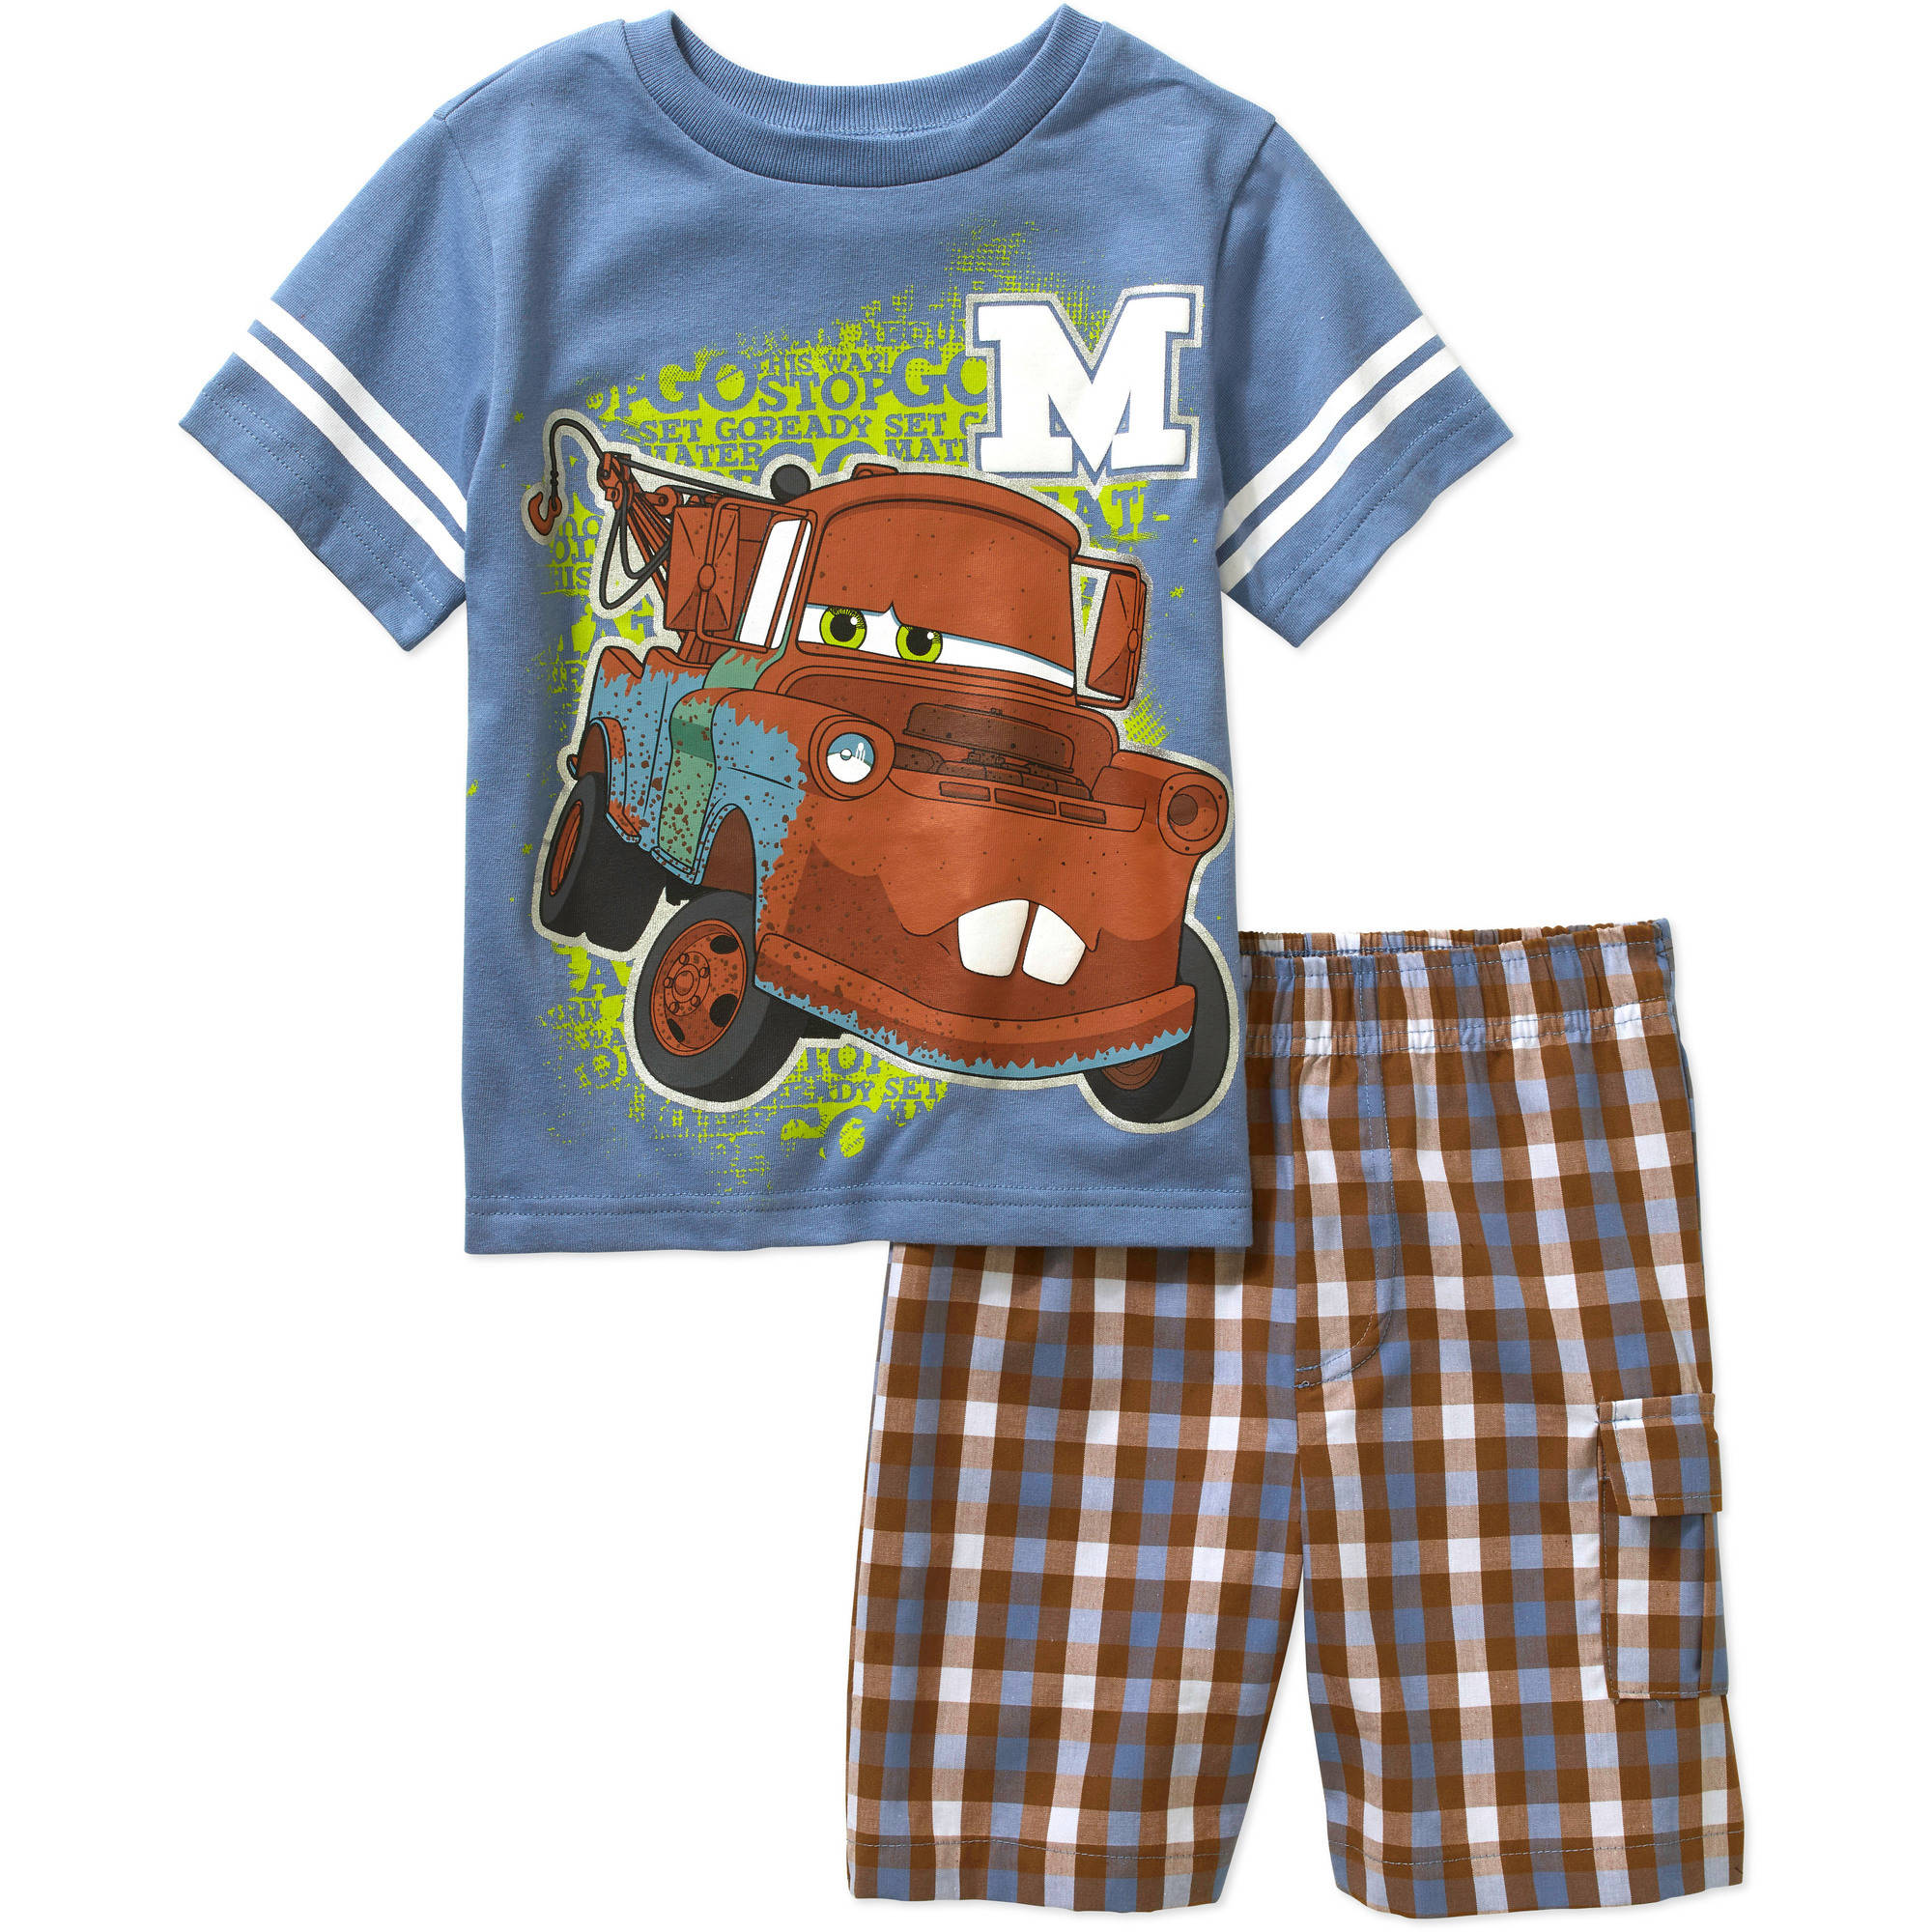 Disney Cars Mater Toddler Boys' Tee and Shorts Outfit Set